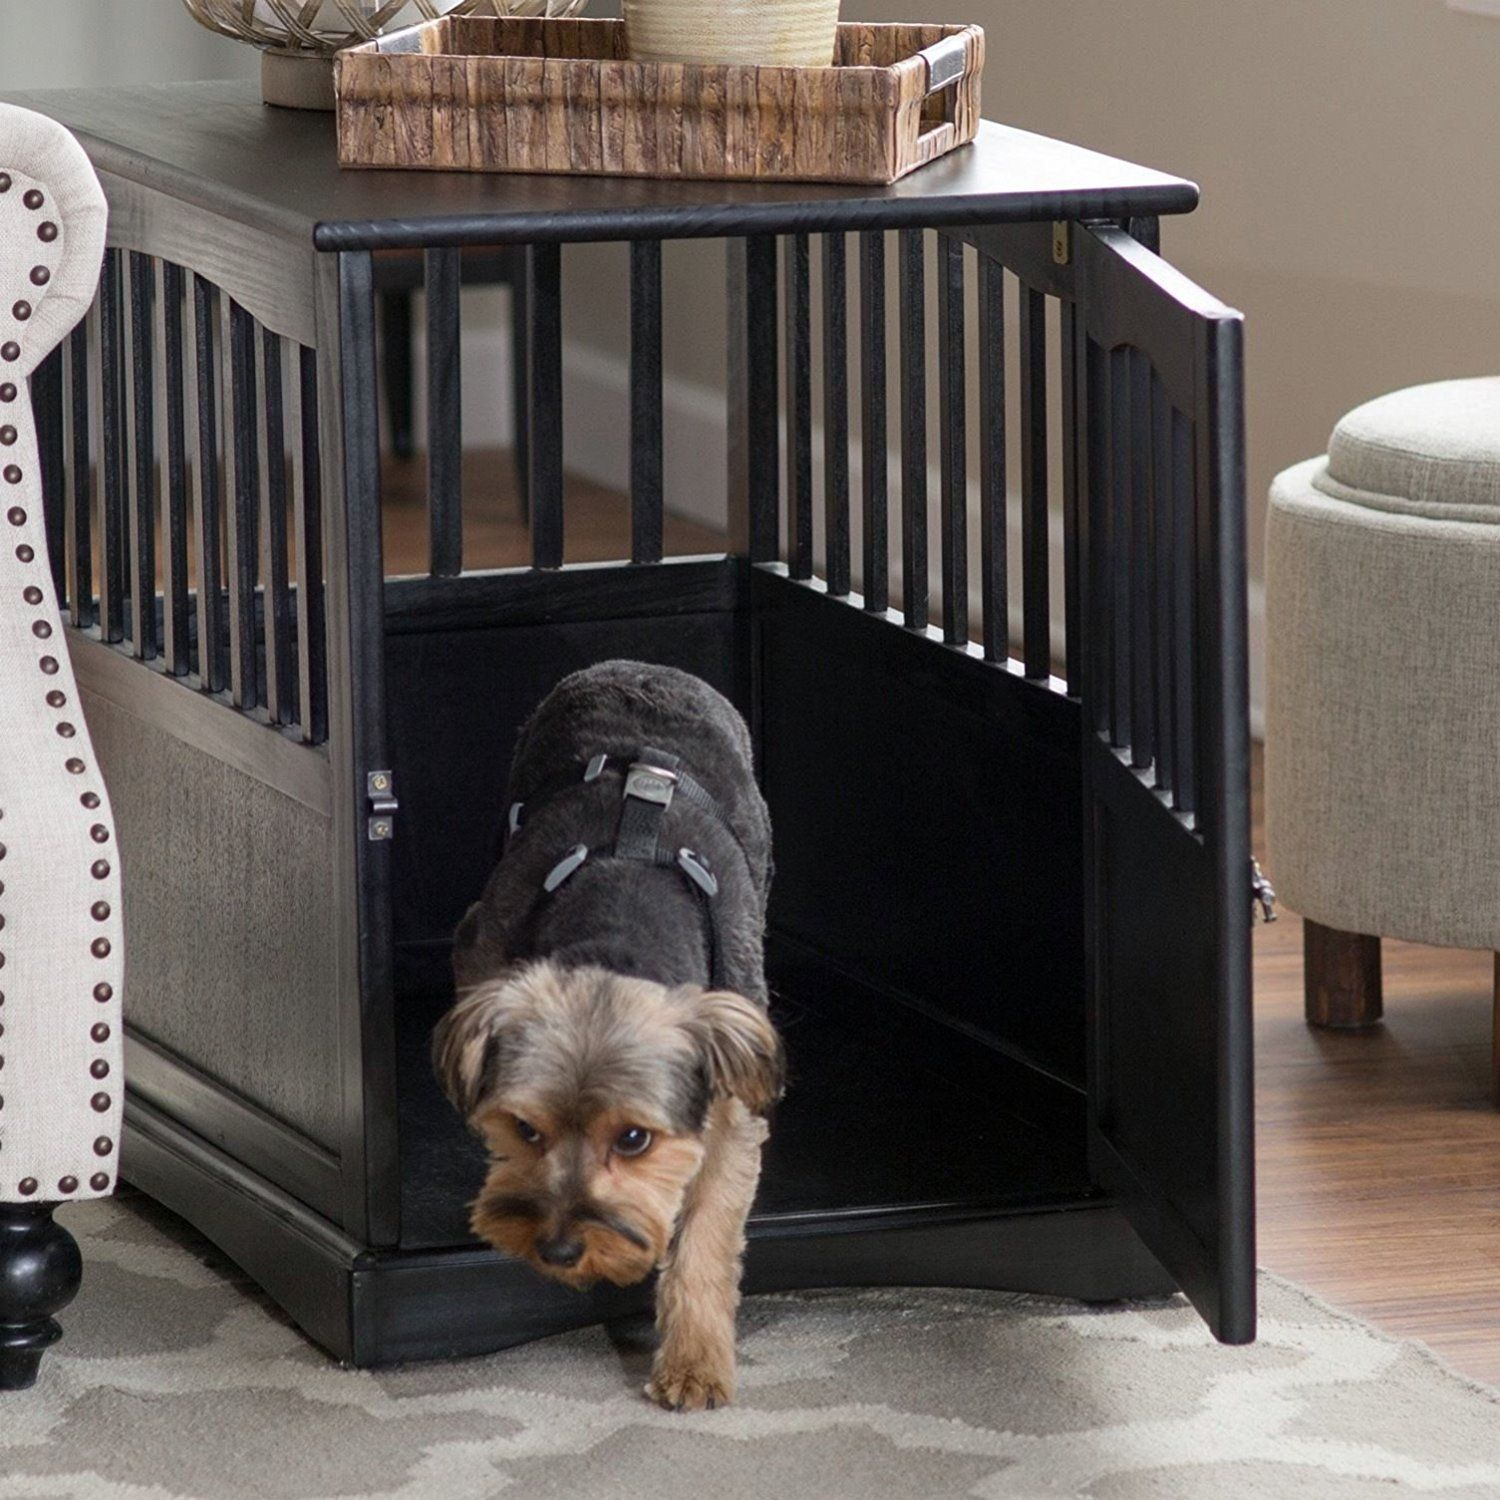 fancy dog crates furniture. Dog · #dog Crate Furniture Fancy Crates N